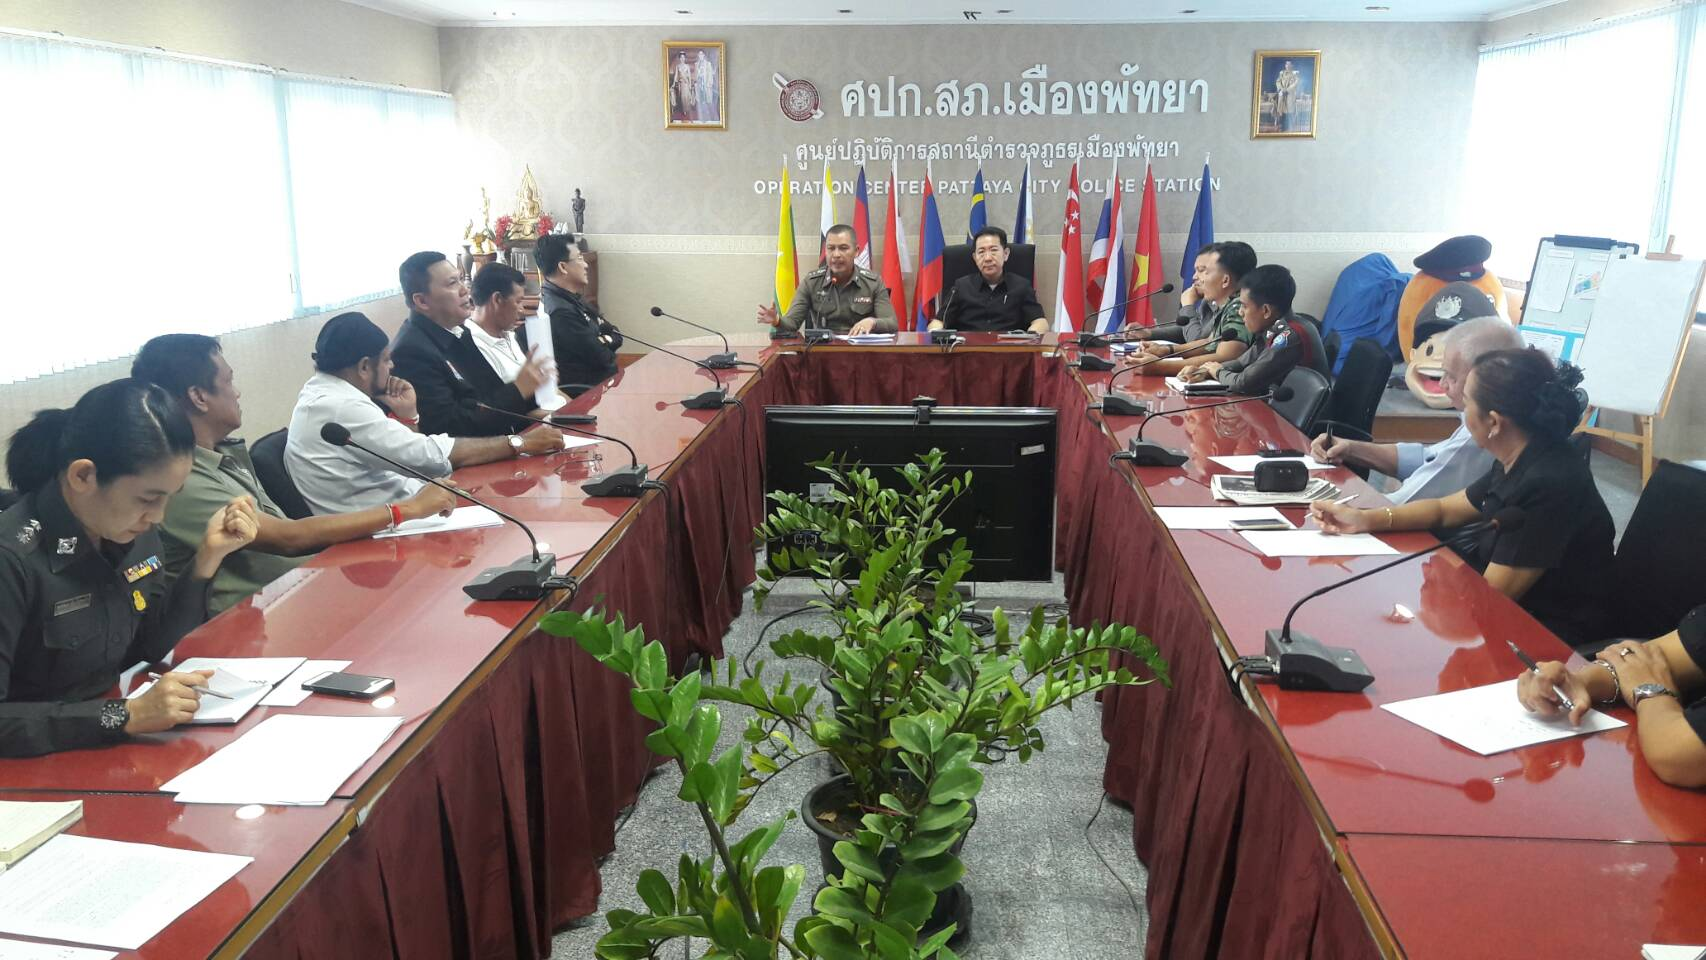 Police Chief Apichai Kroppech and Banglamung District Chief Naris Niramaiwong met with officials to outline the specifics of the proposed happy zones.